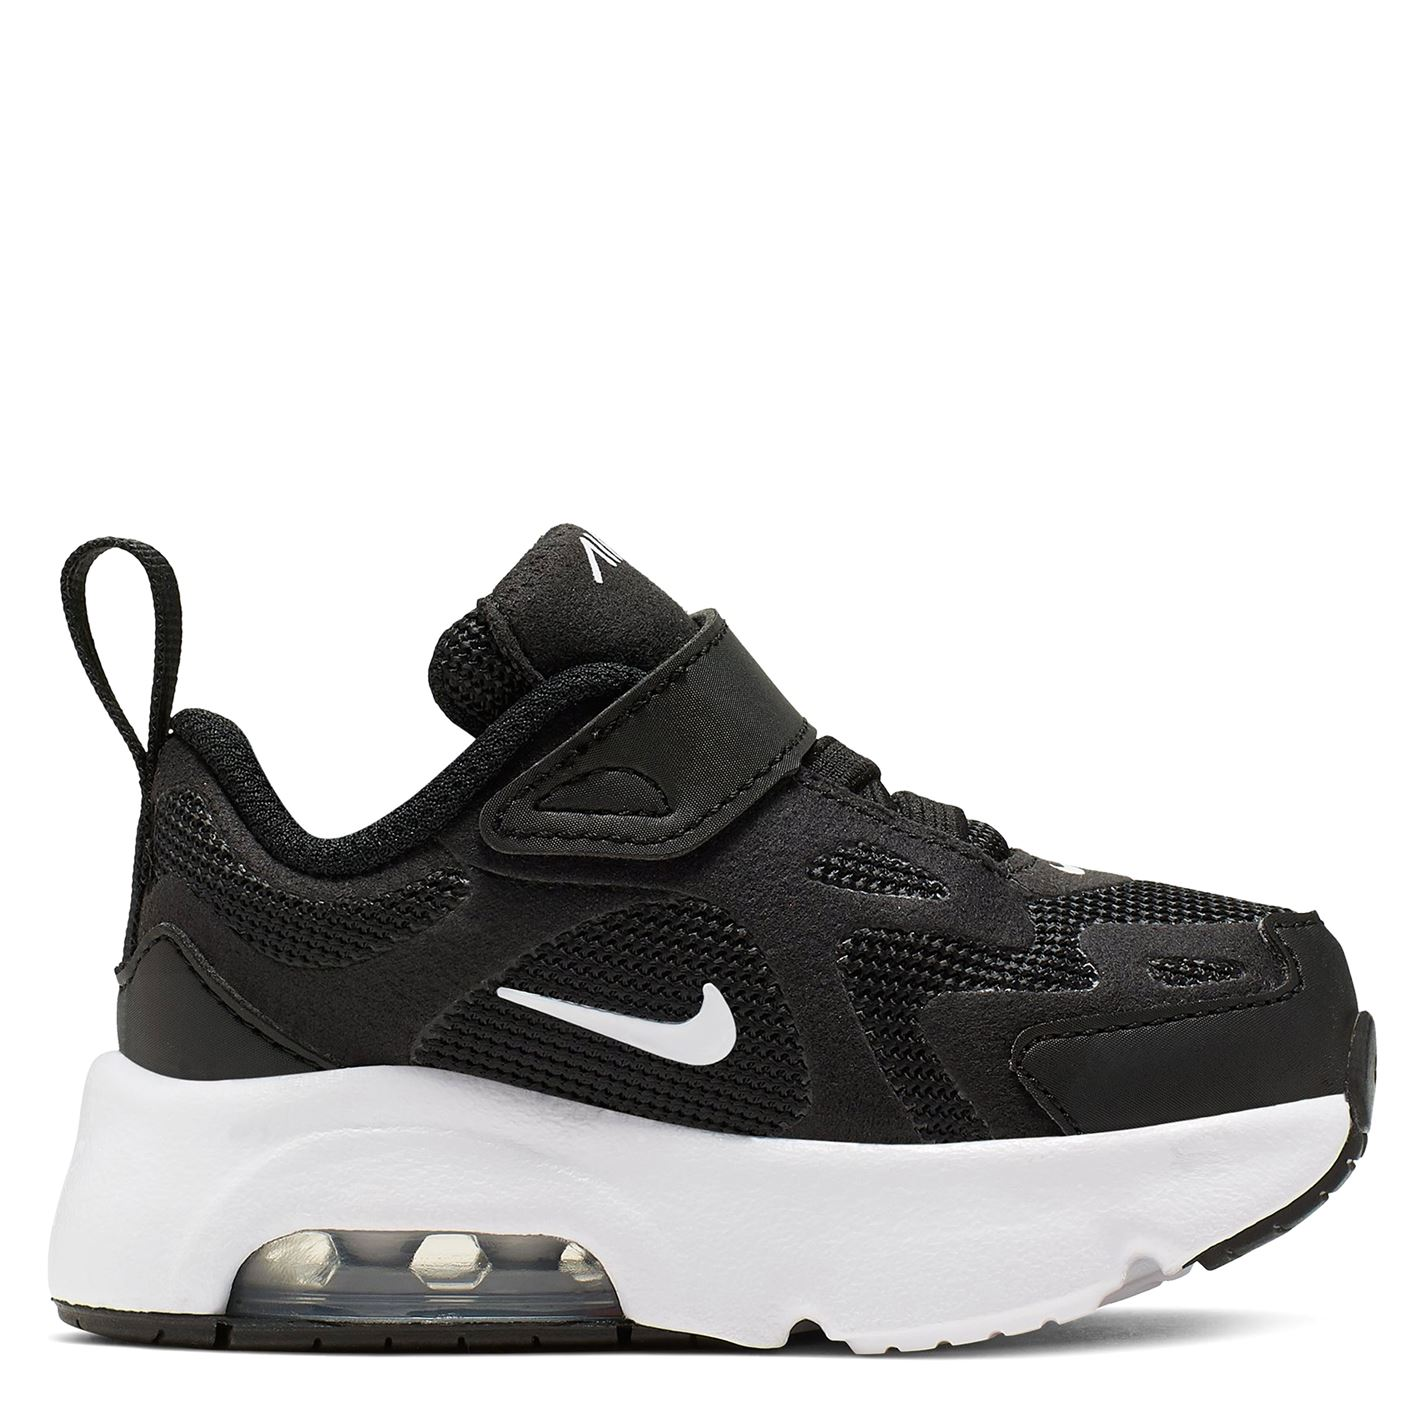 Nike Air Max 200 Infant Boys Black/White